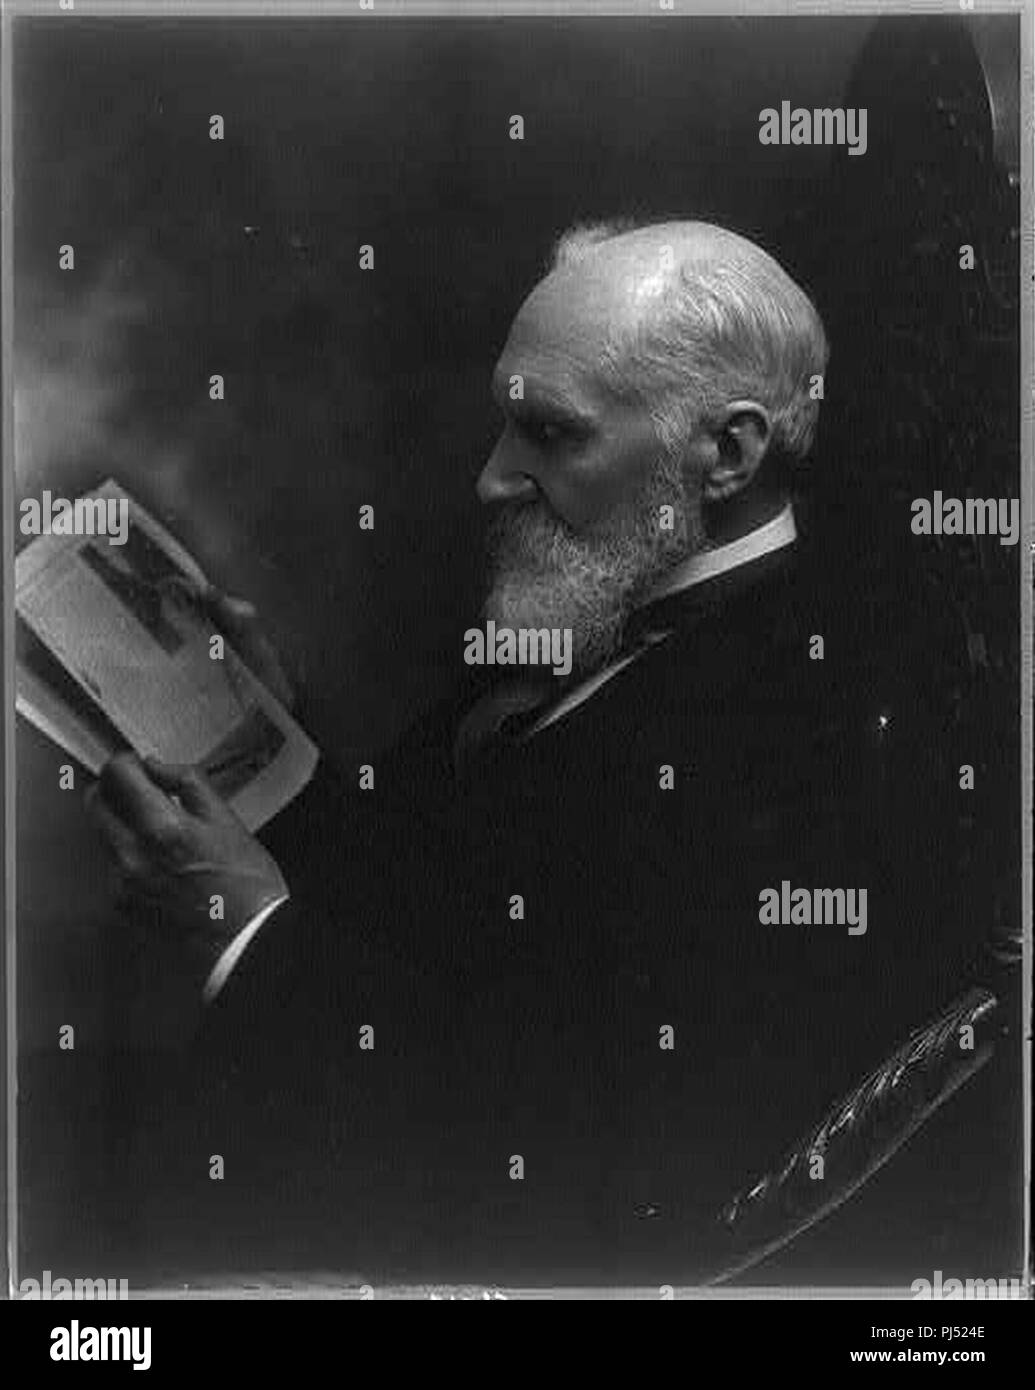 Baron) William Thomson Kelvin 1824-1907 - Stock Image